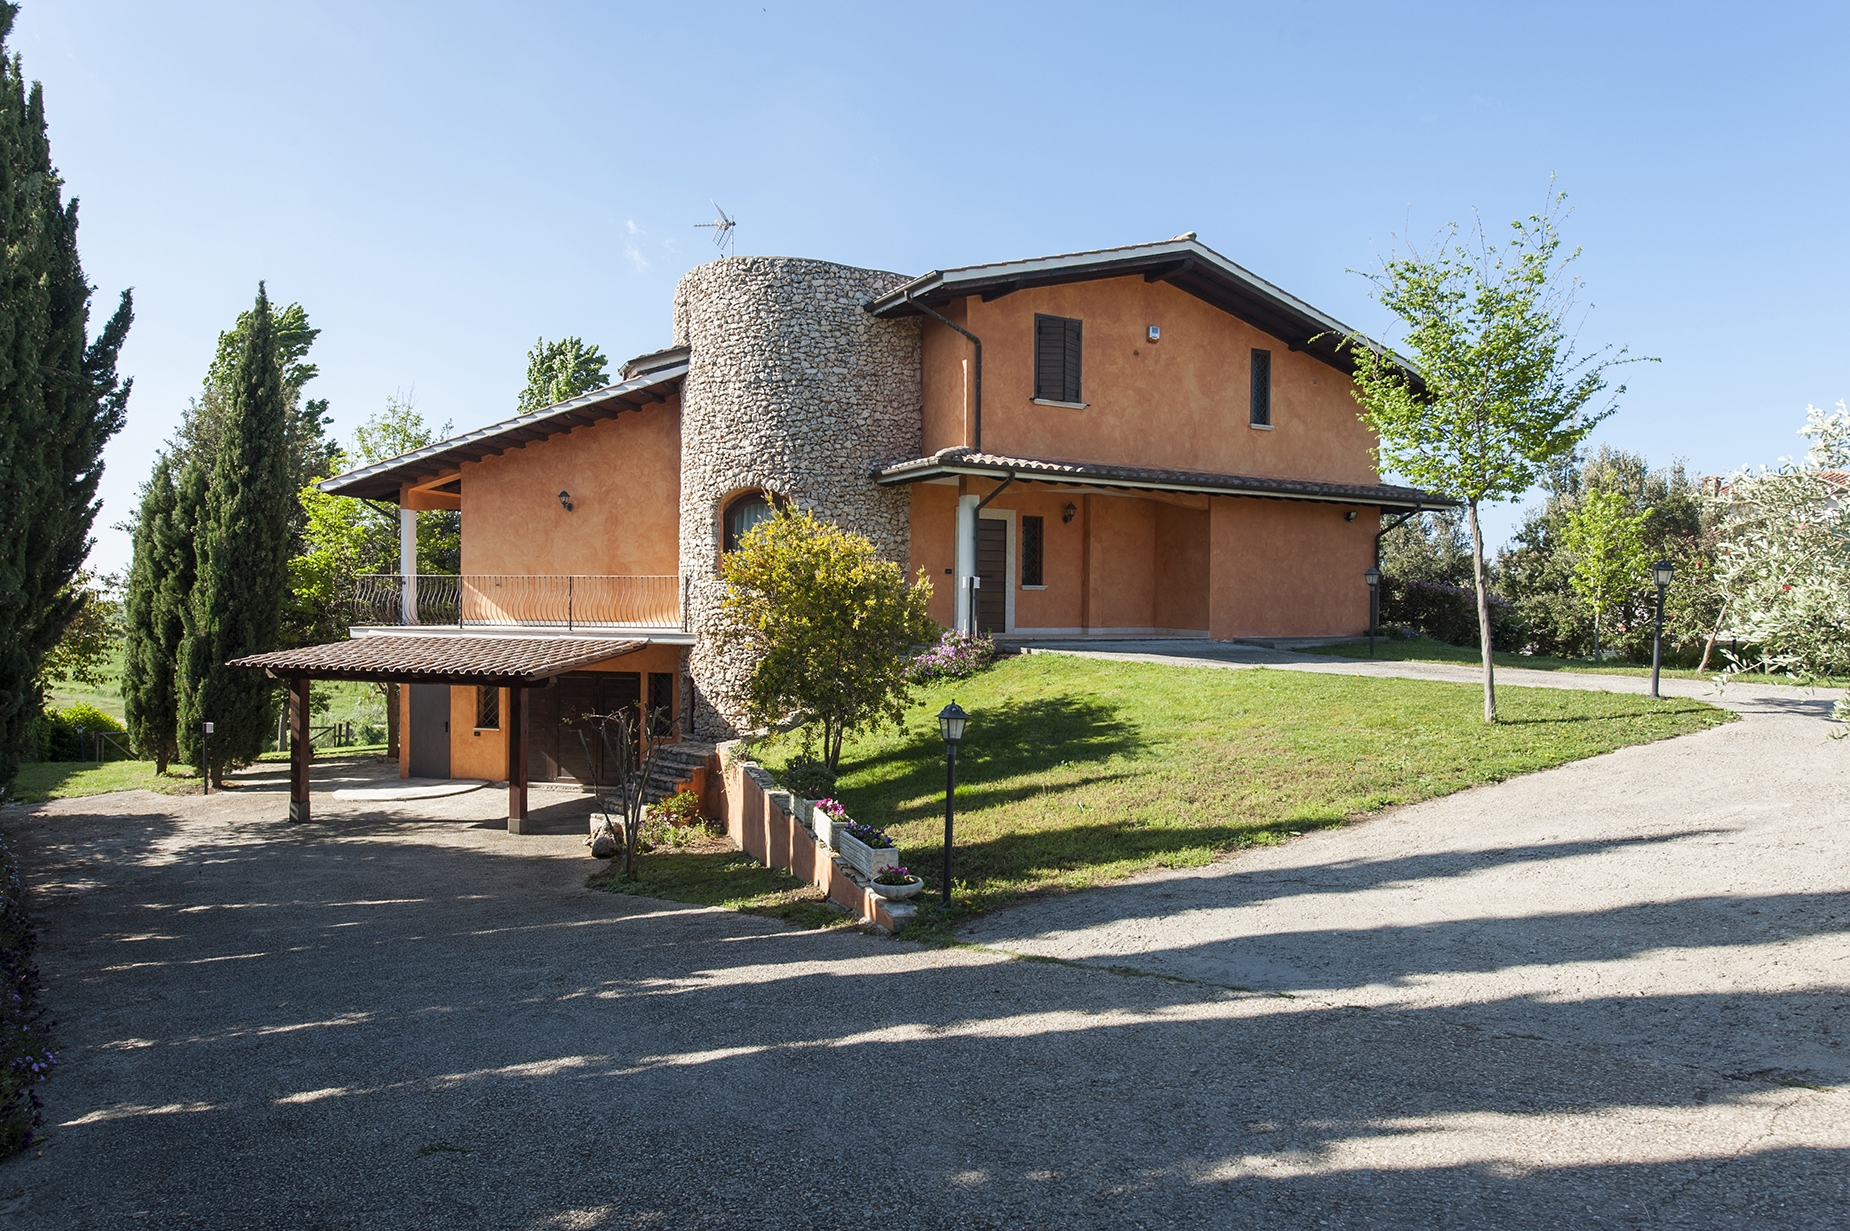 Single Family Home for Sale at Country villa in Cerveteri Other Rome, Italy